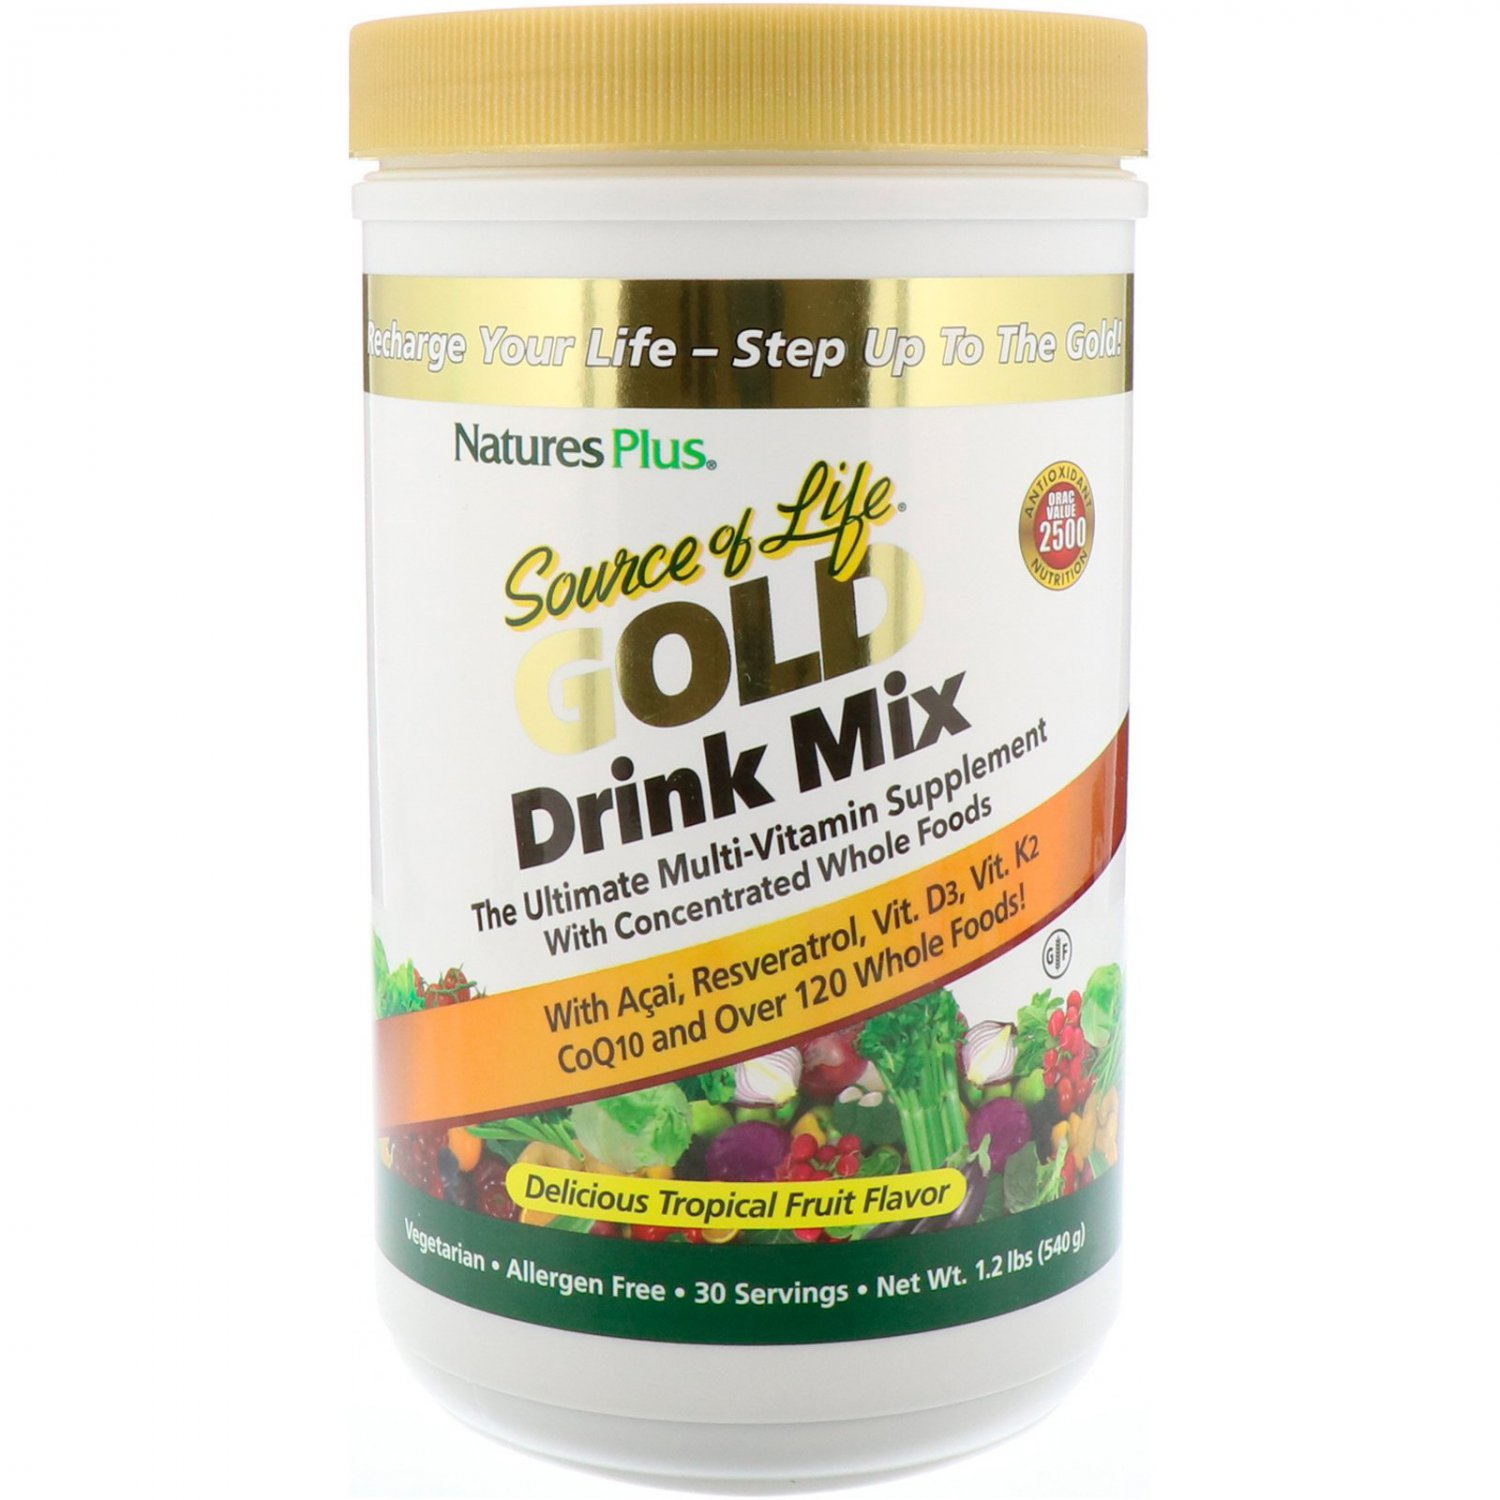 Nature's Plus, Source of Life Gold Drink Mix, Delicious Tropical Fruit Flavor, 1.2 lbs (540 g)